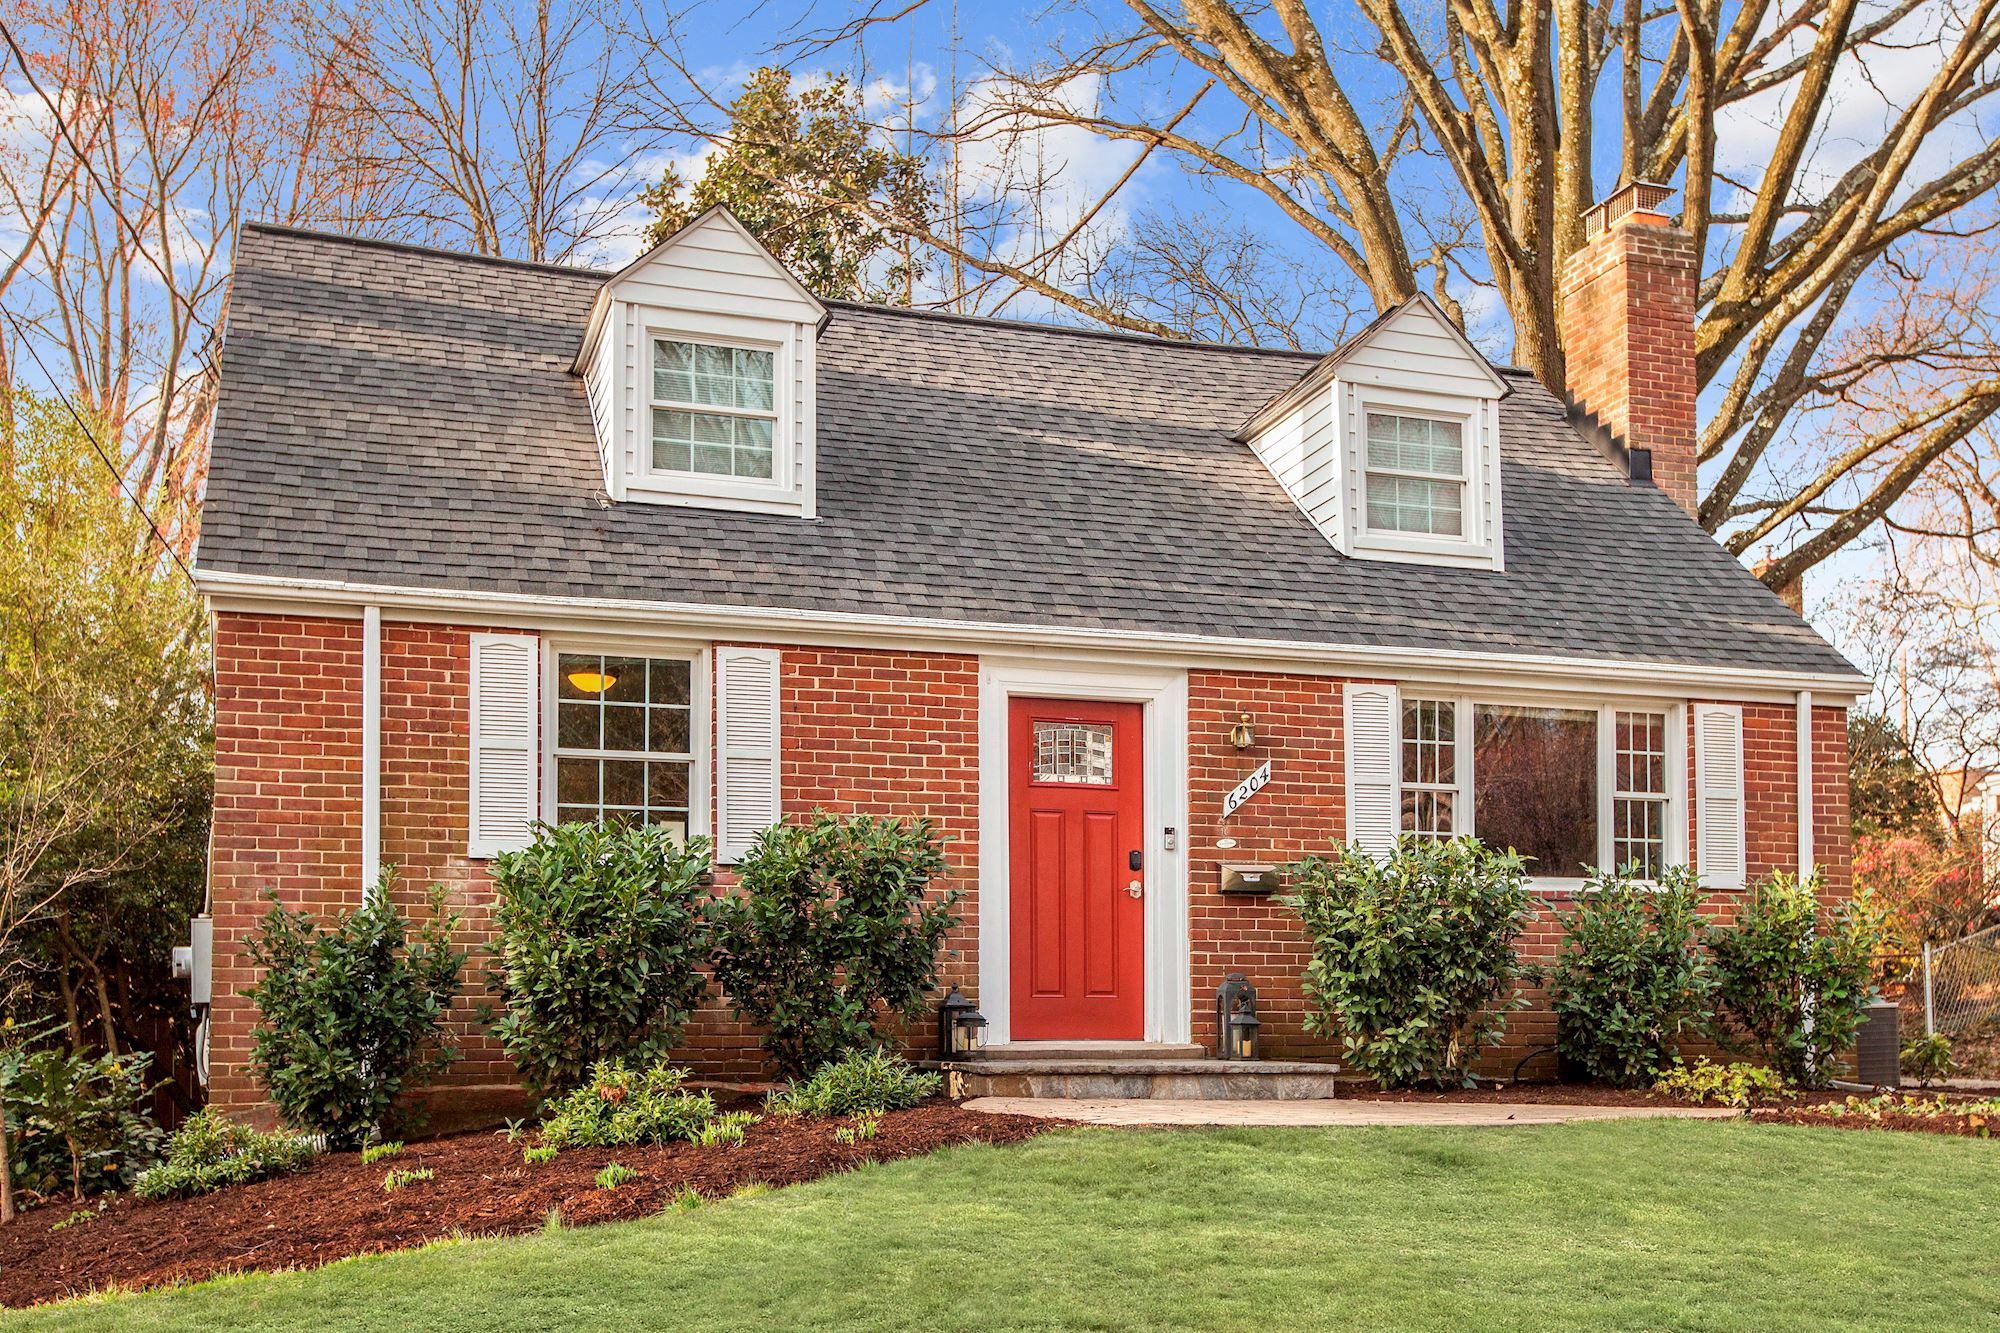 NEW LISTING: Expanded and Renovated Single Family Home in Prime Bethesda,MD Location